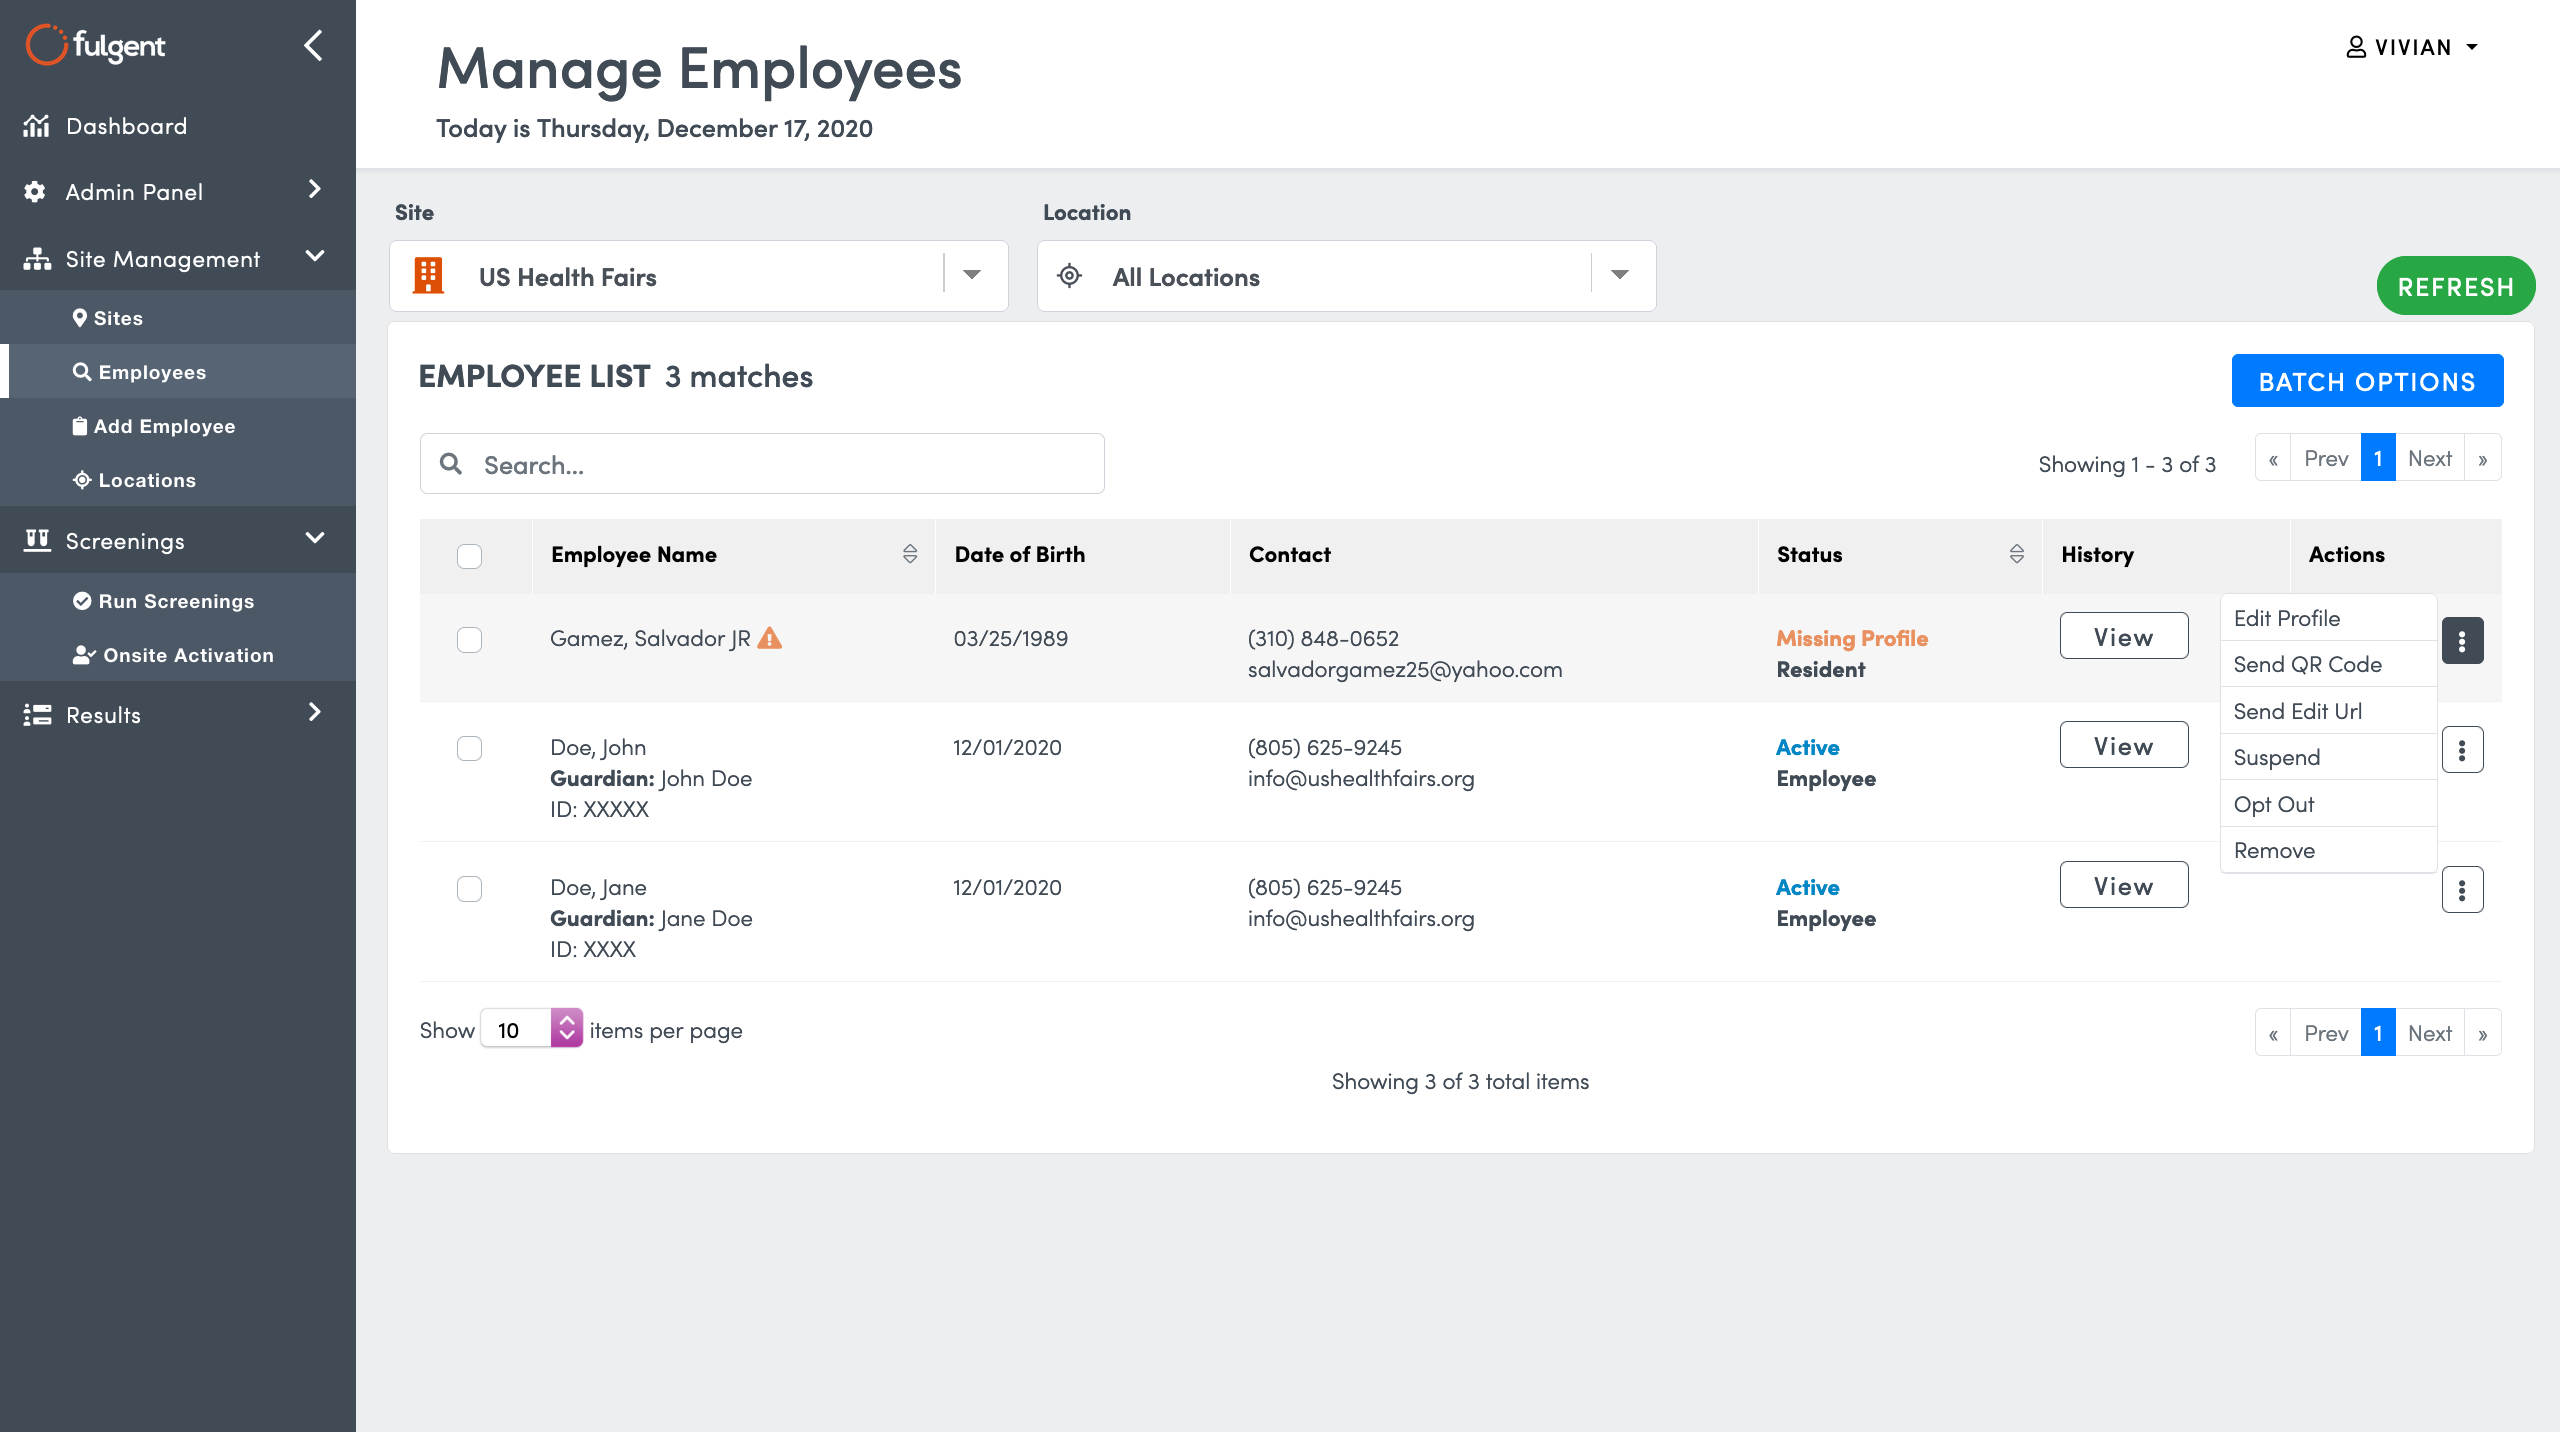 Use the right menu to make changes to Employee Registrations